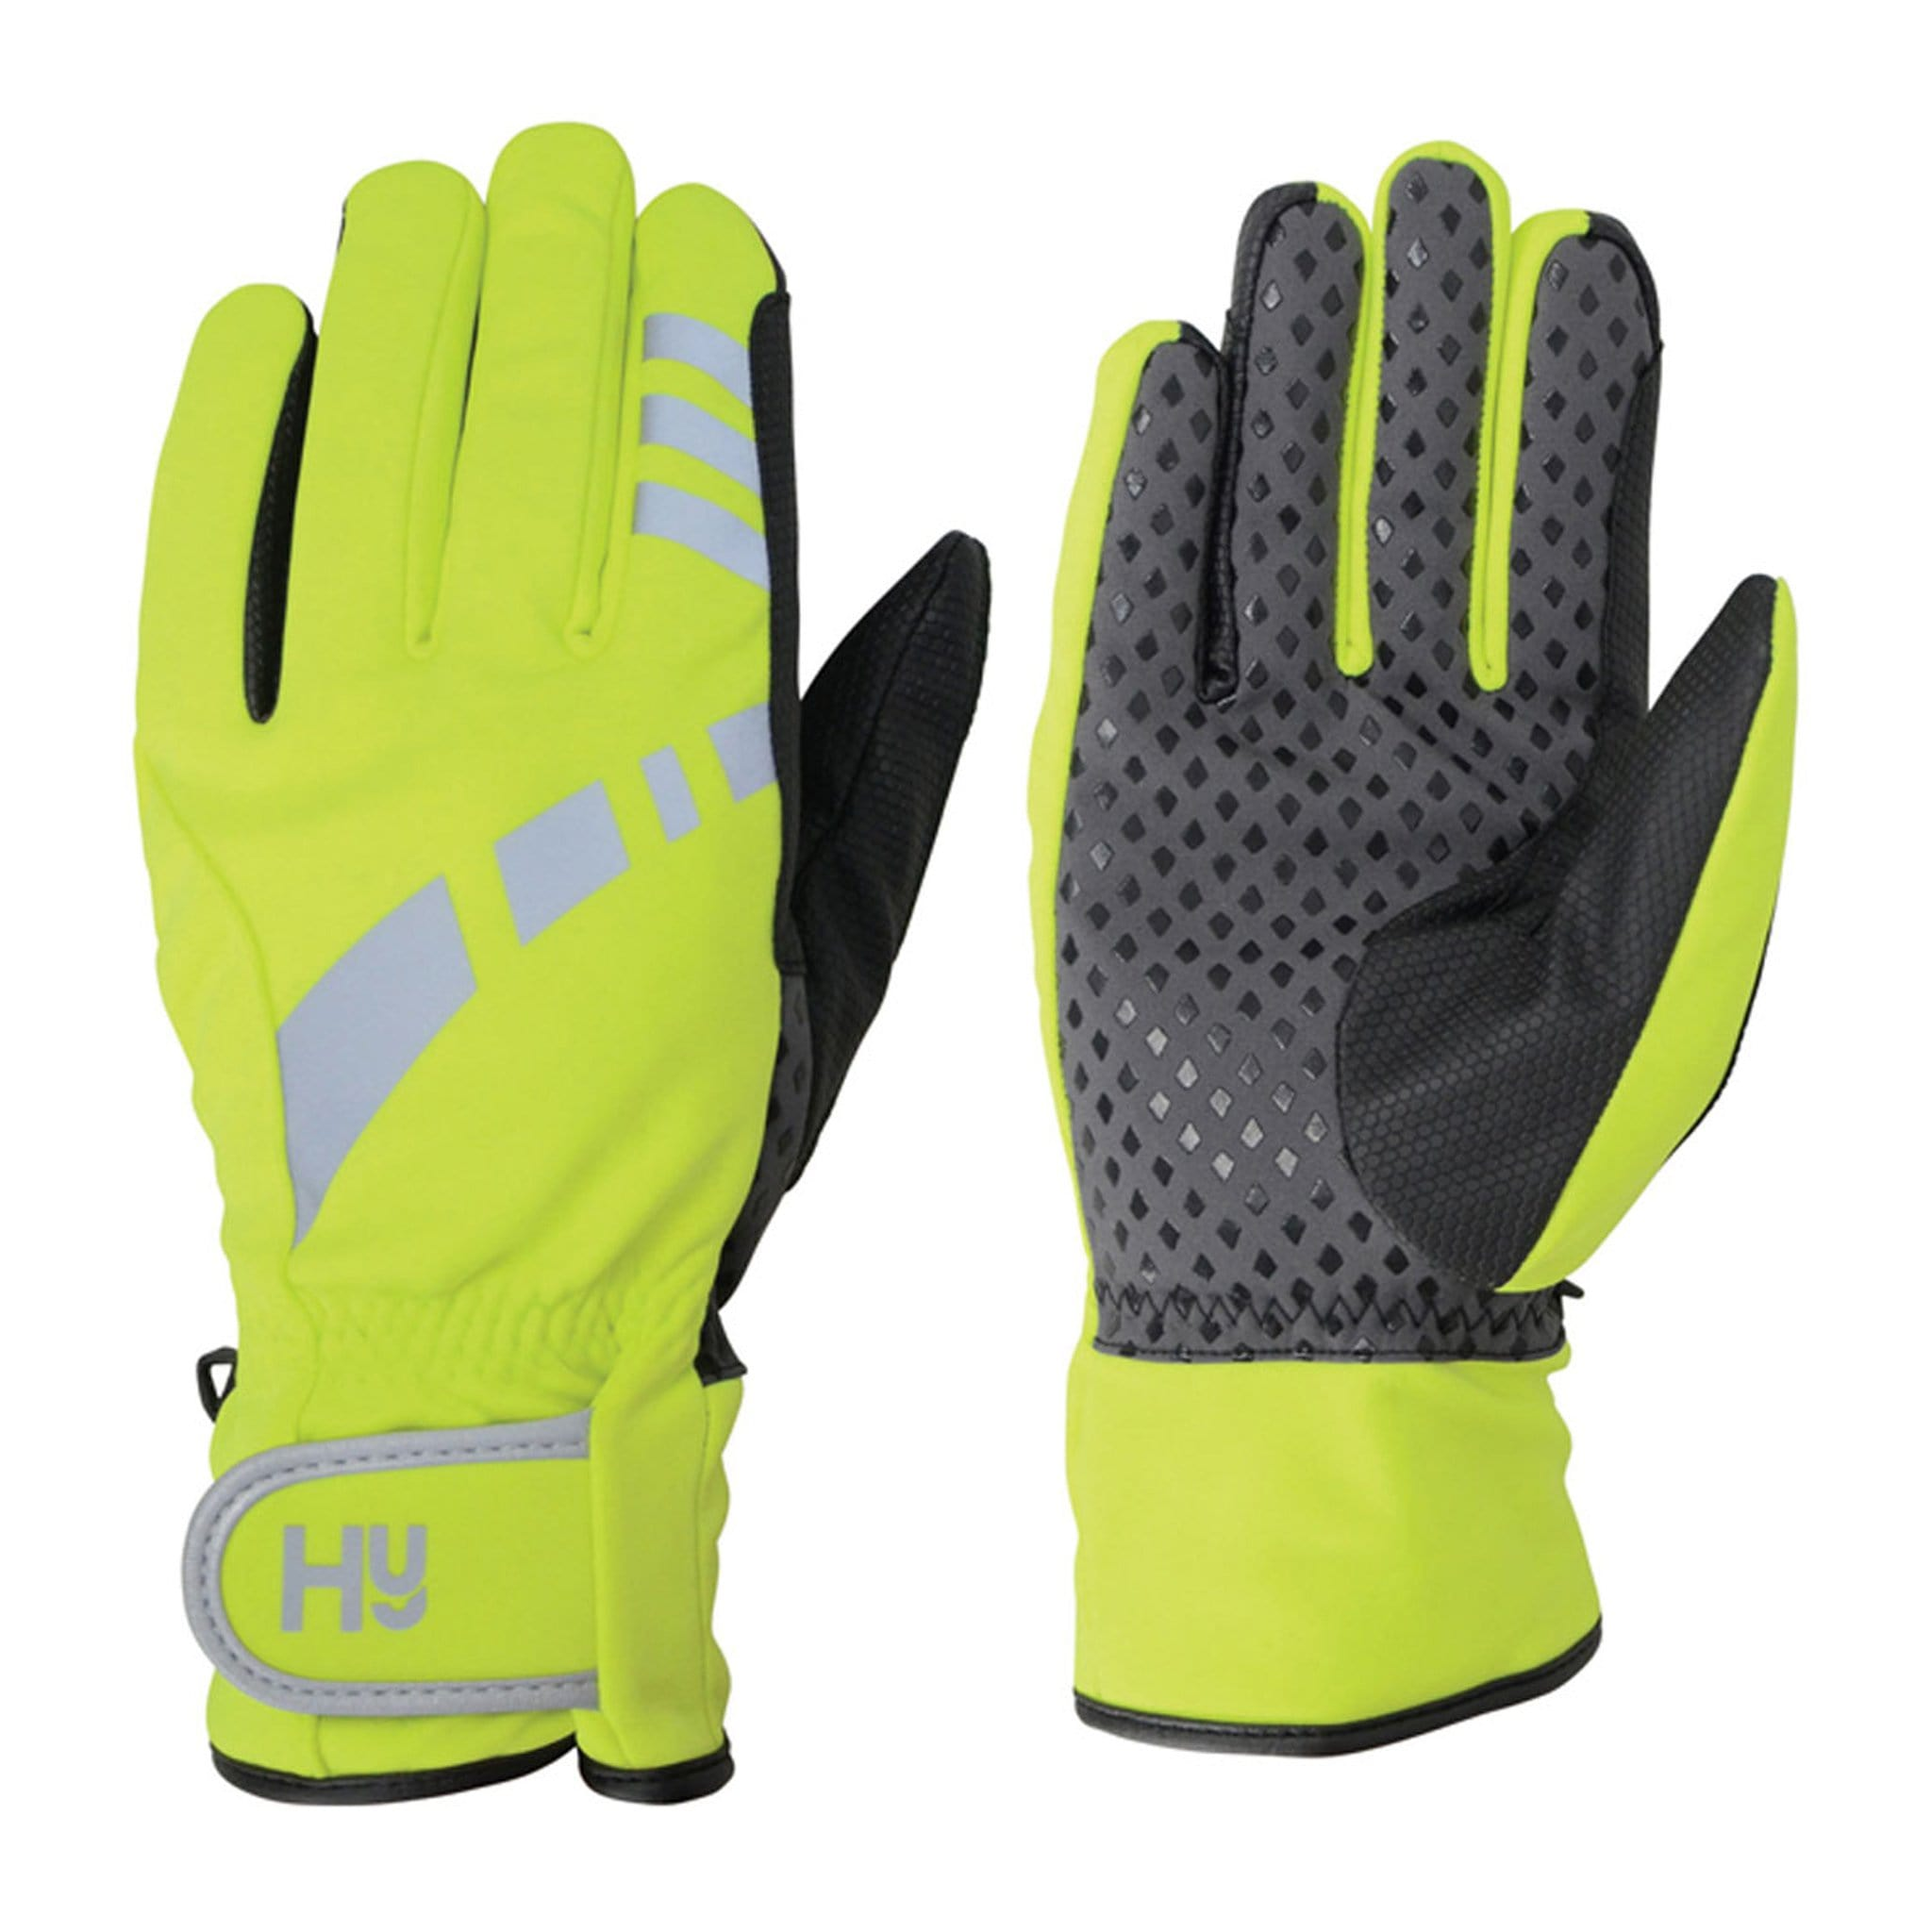 Hy5 Reflective Waterproof Multipurpose Gloves Yellow